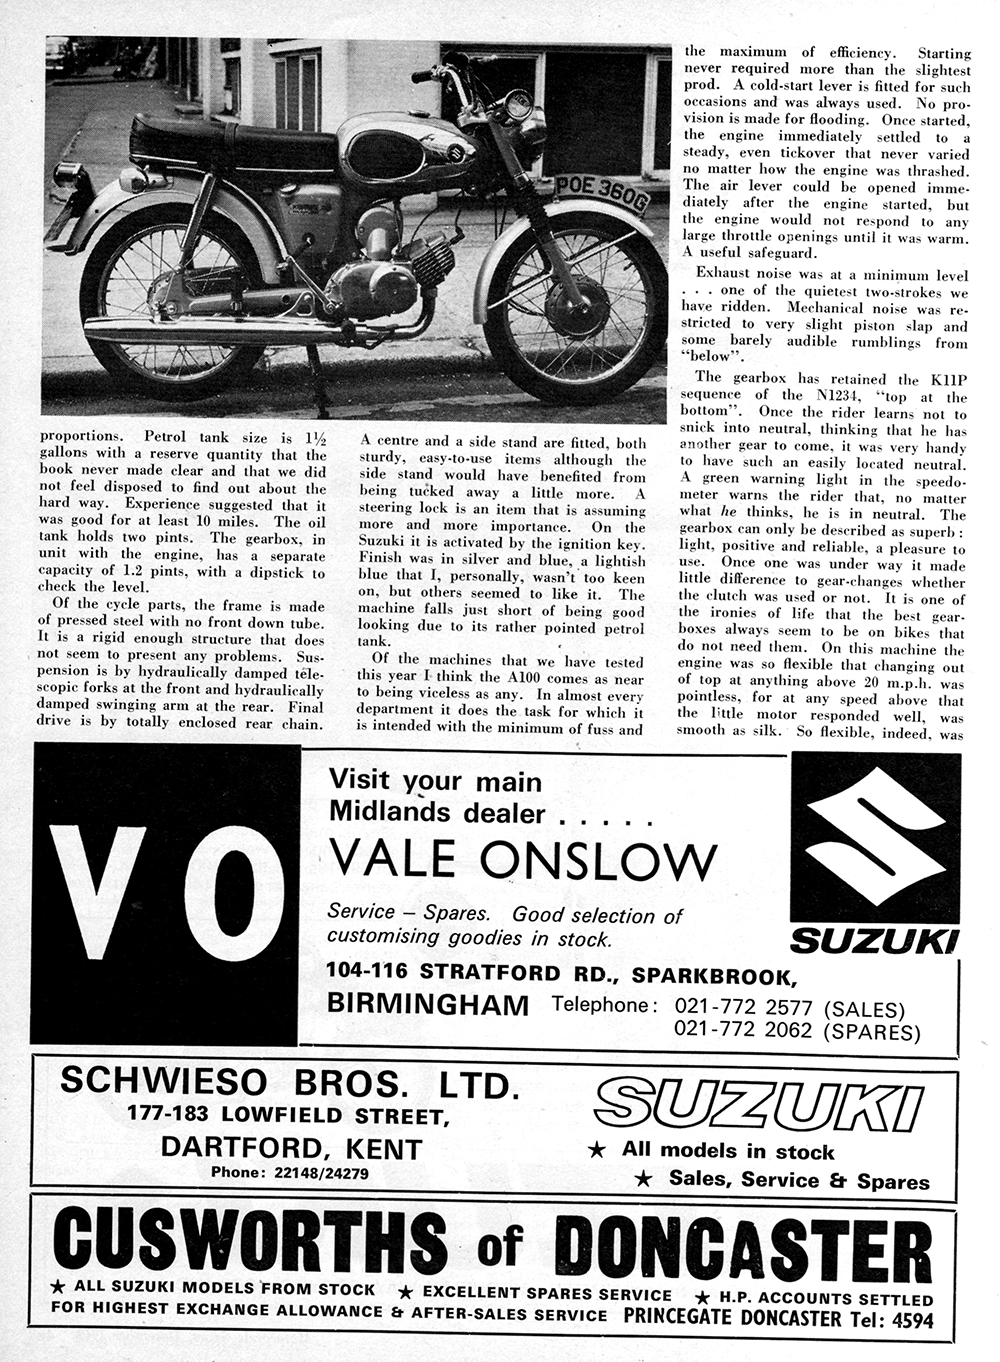 1970 Suzuki A100 road test 2.jpg